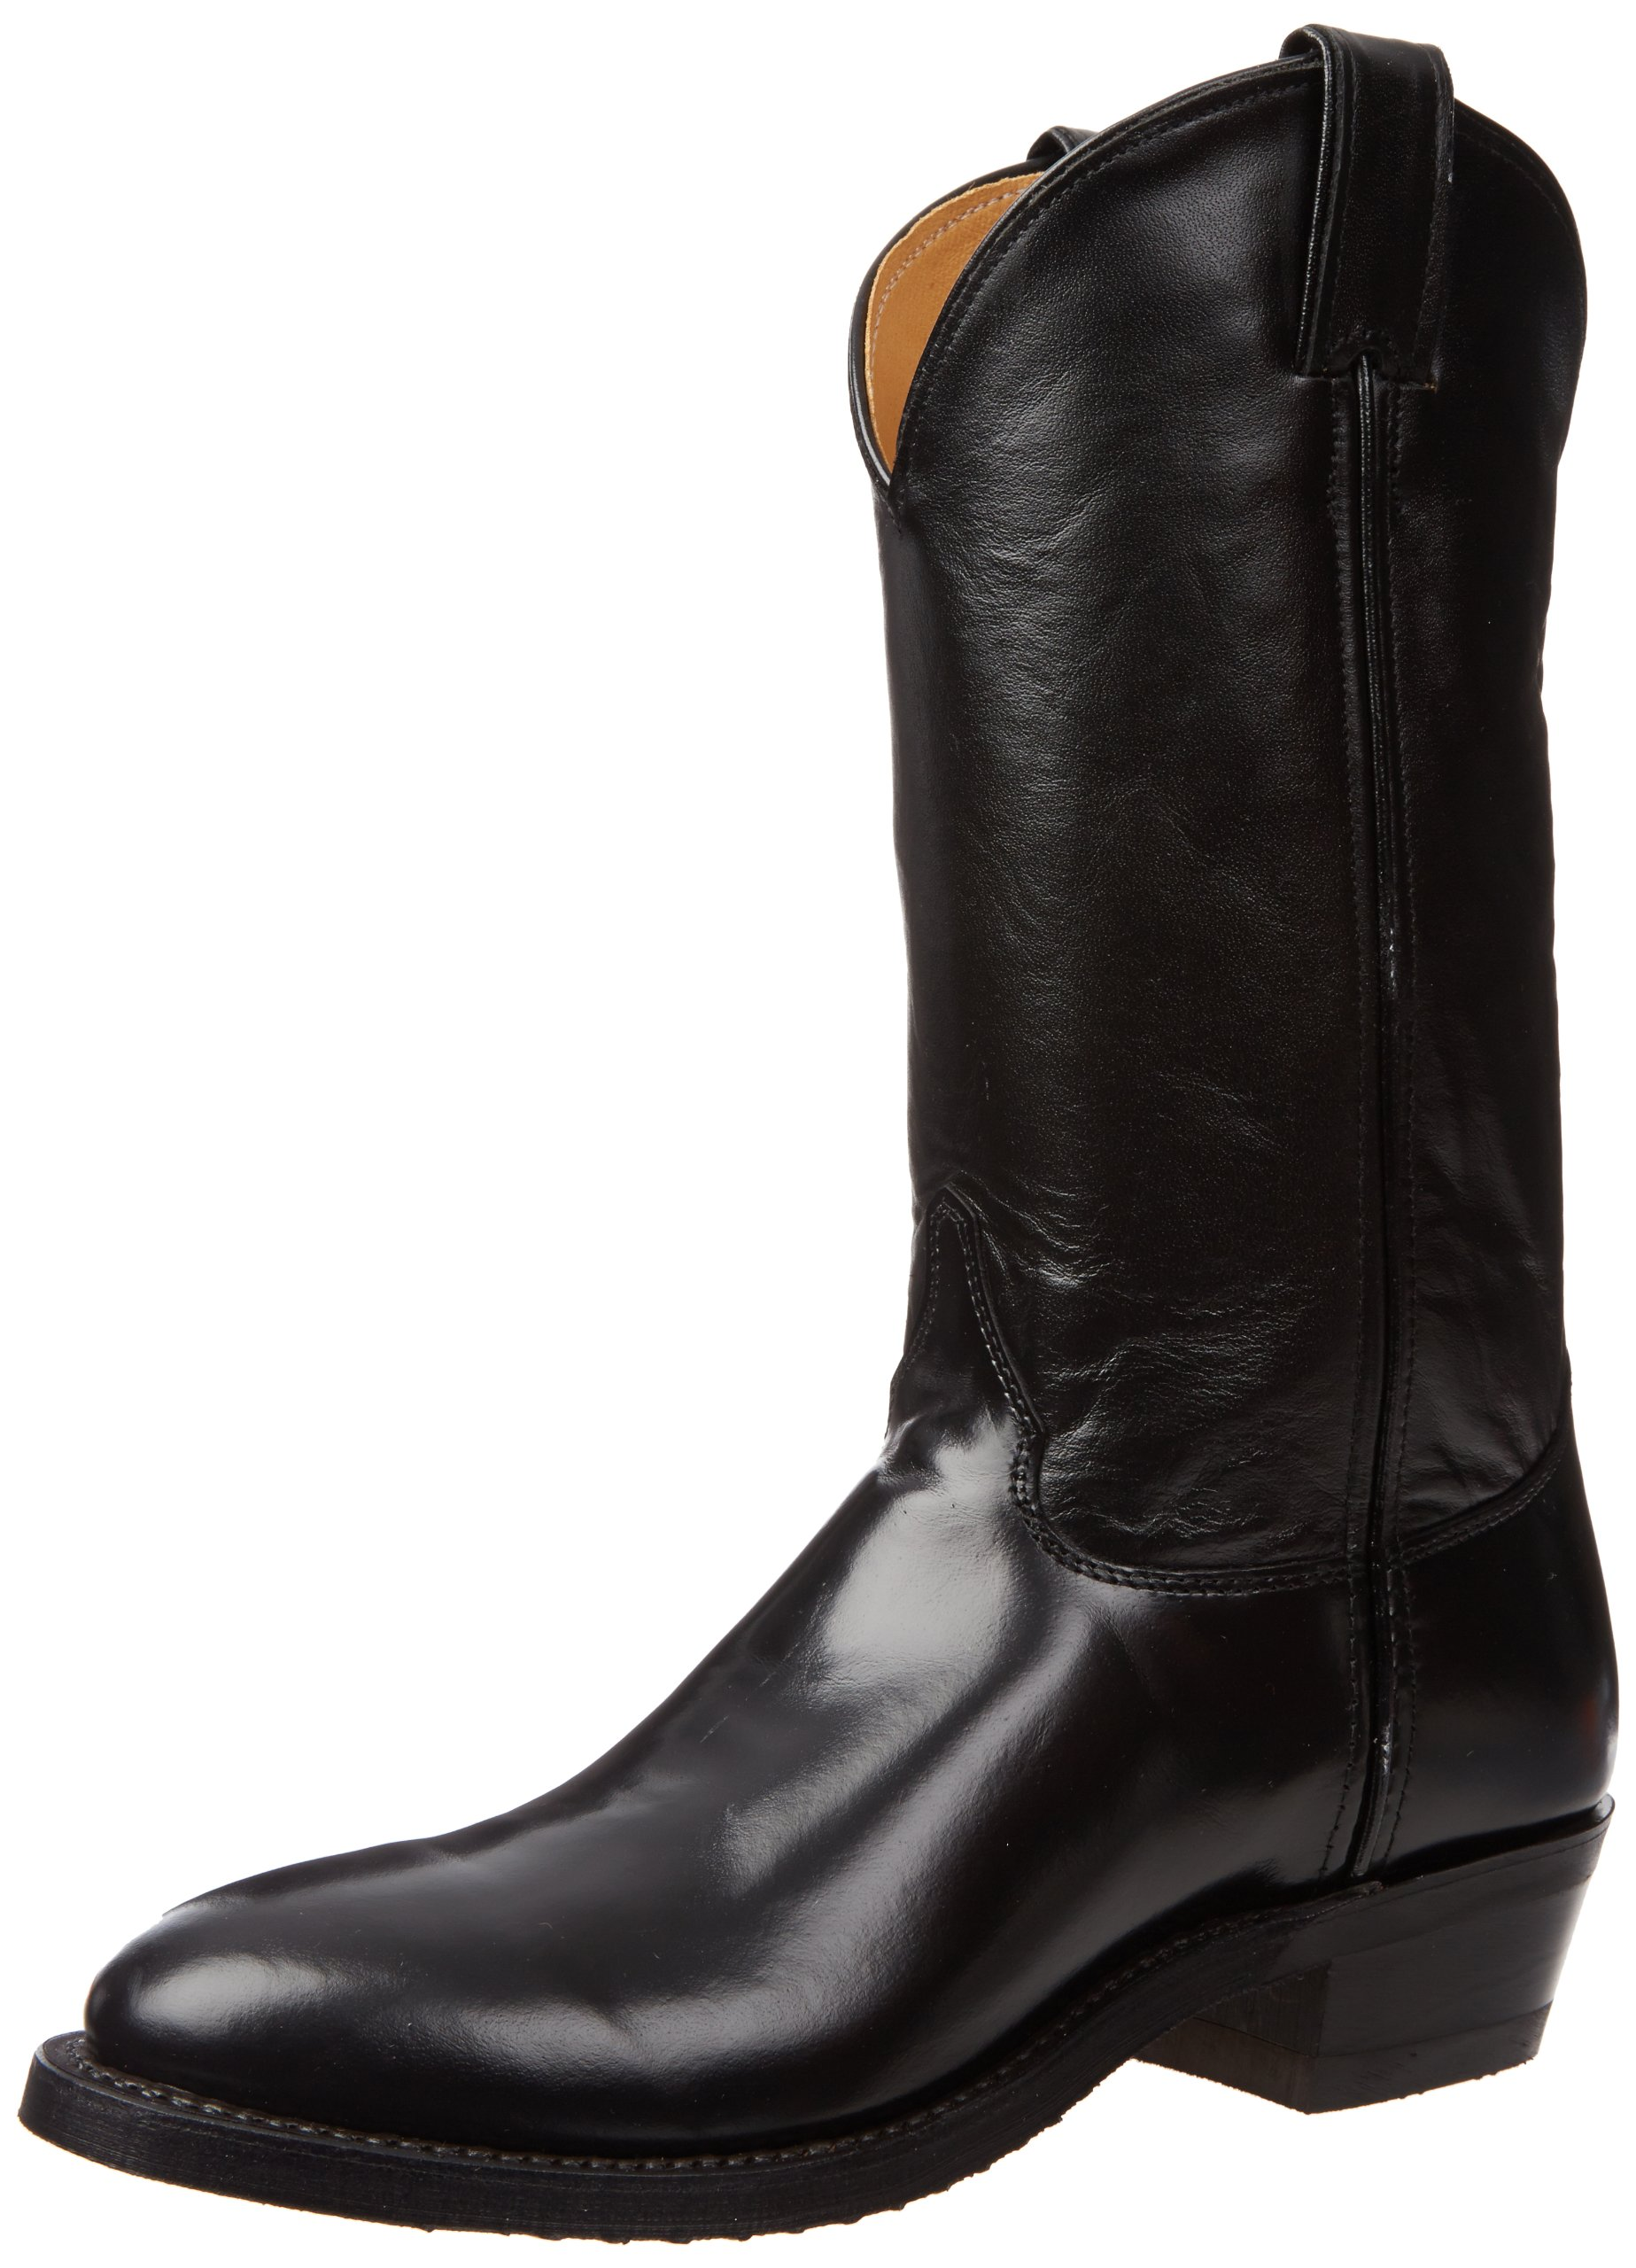 Justin Boots Men's U.S.A. 12'' Classic Western Boot Low Profile Round Toe,Black Melo-Veal,11 D US